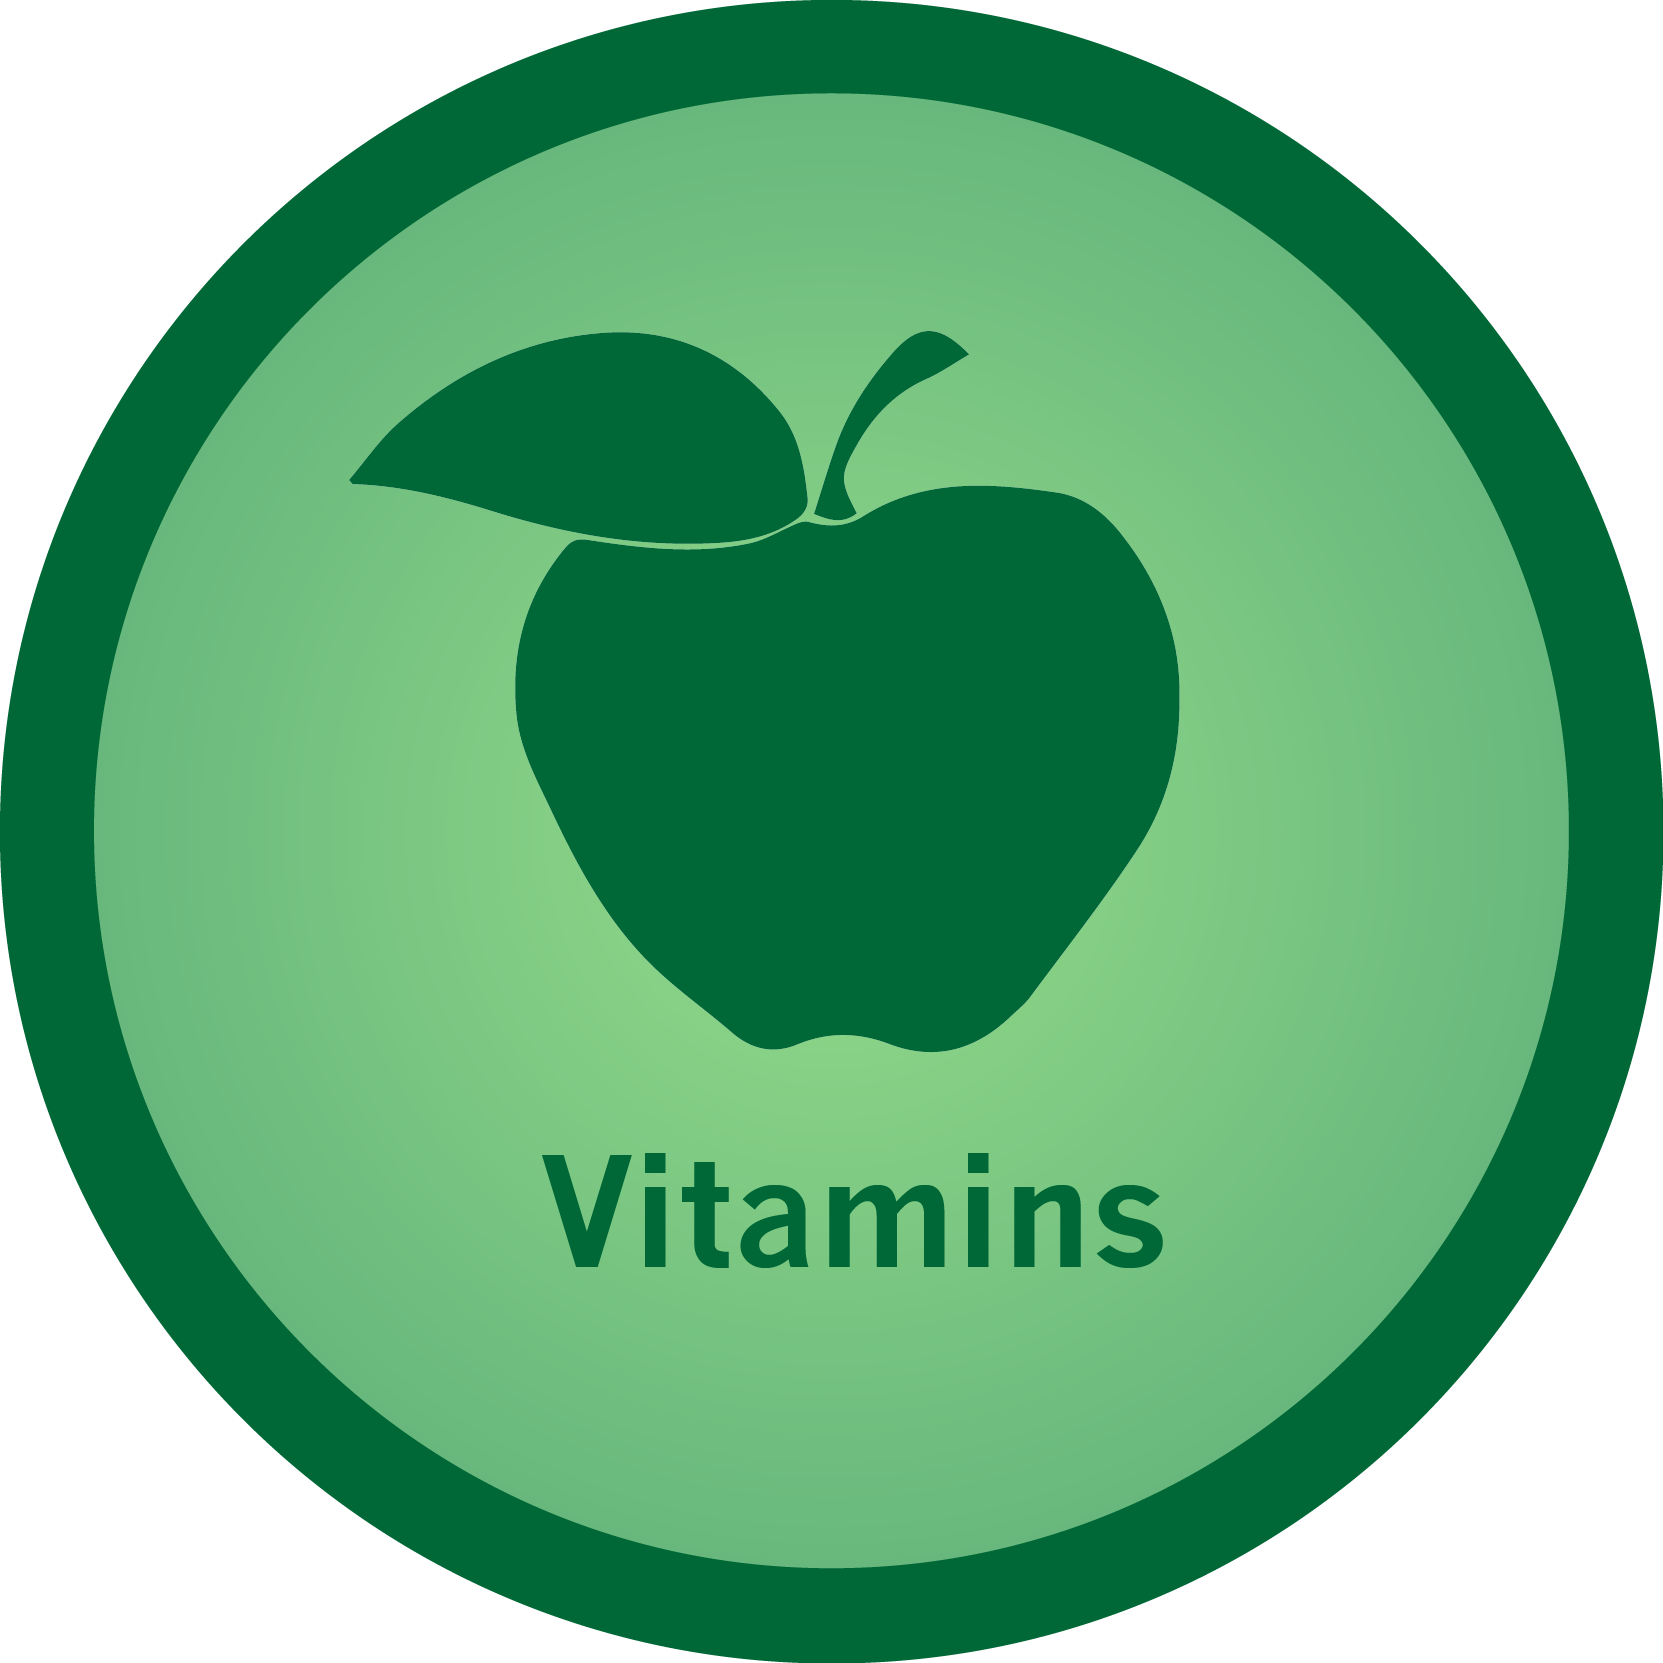 icon apple vit